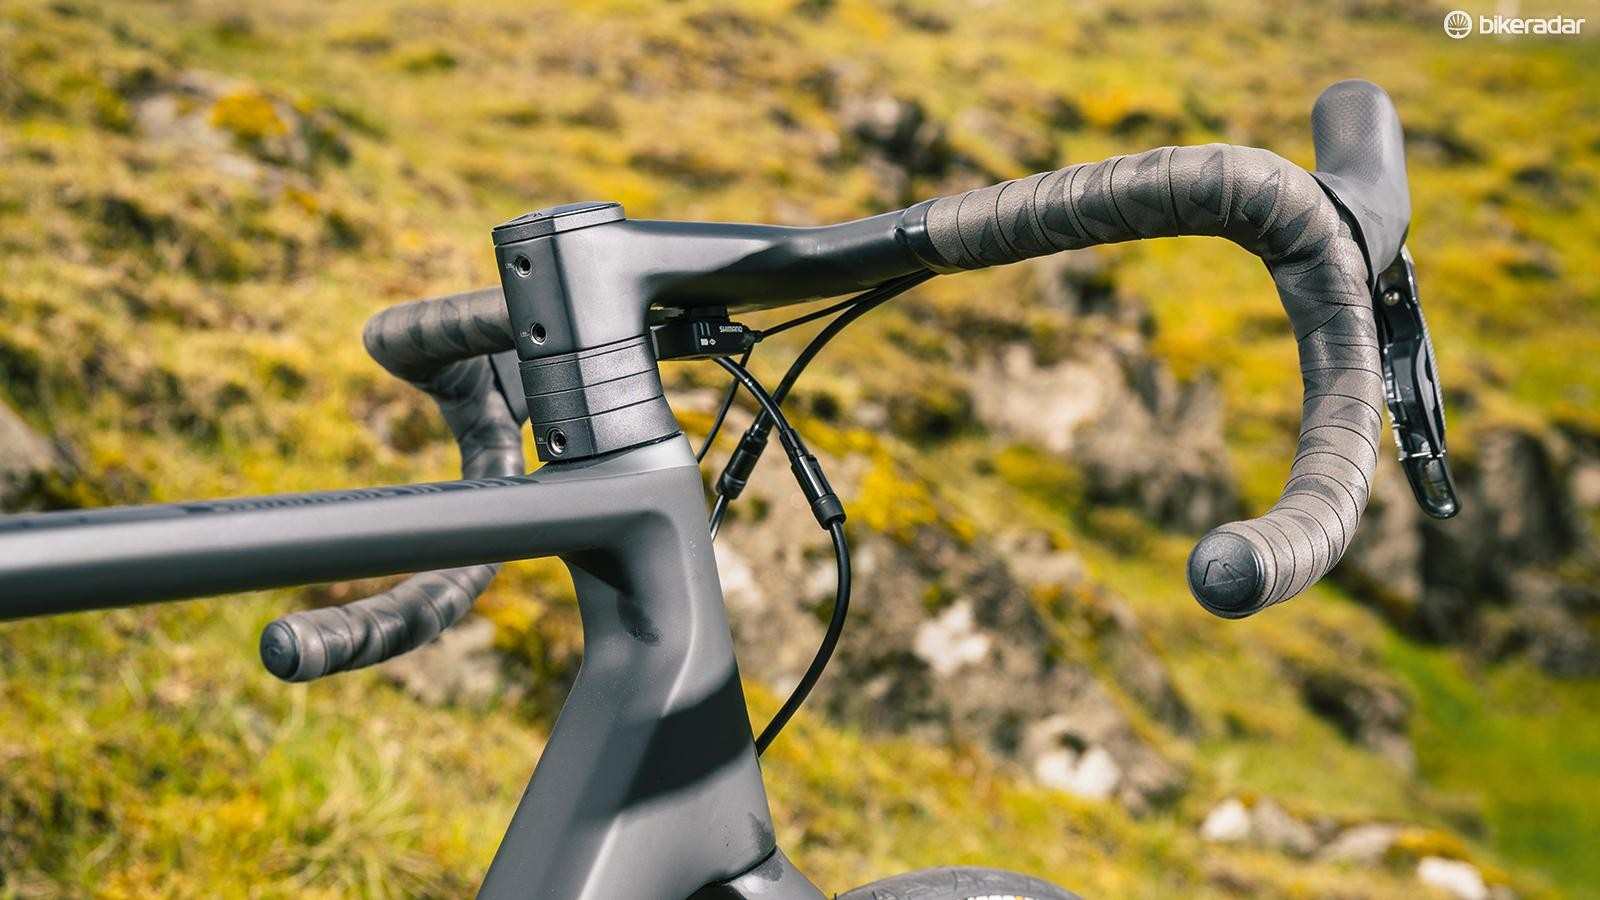 One-piece bar and stem with its proprietary shaped spacers, looks more aggressive than cossetting